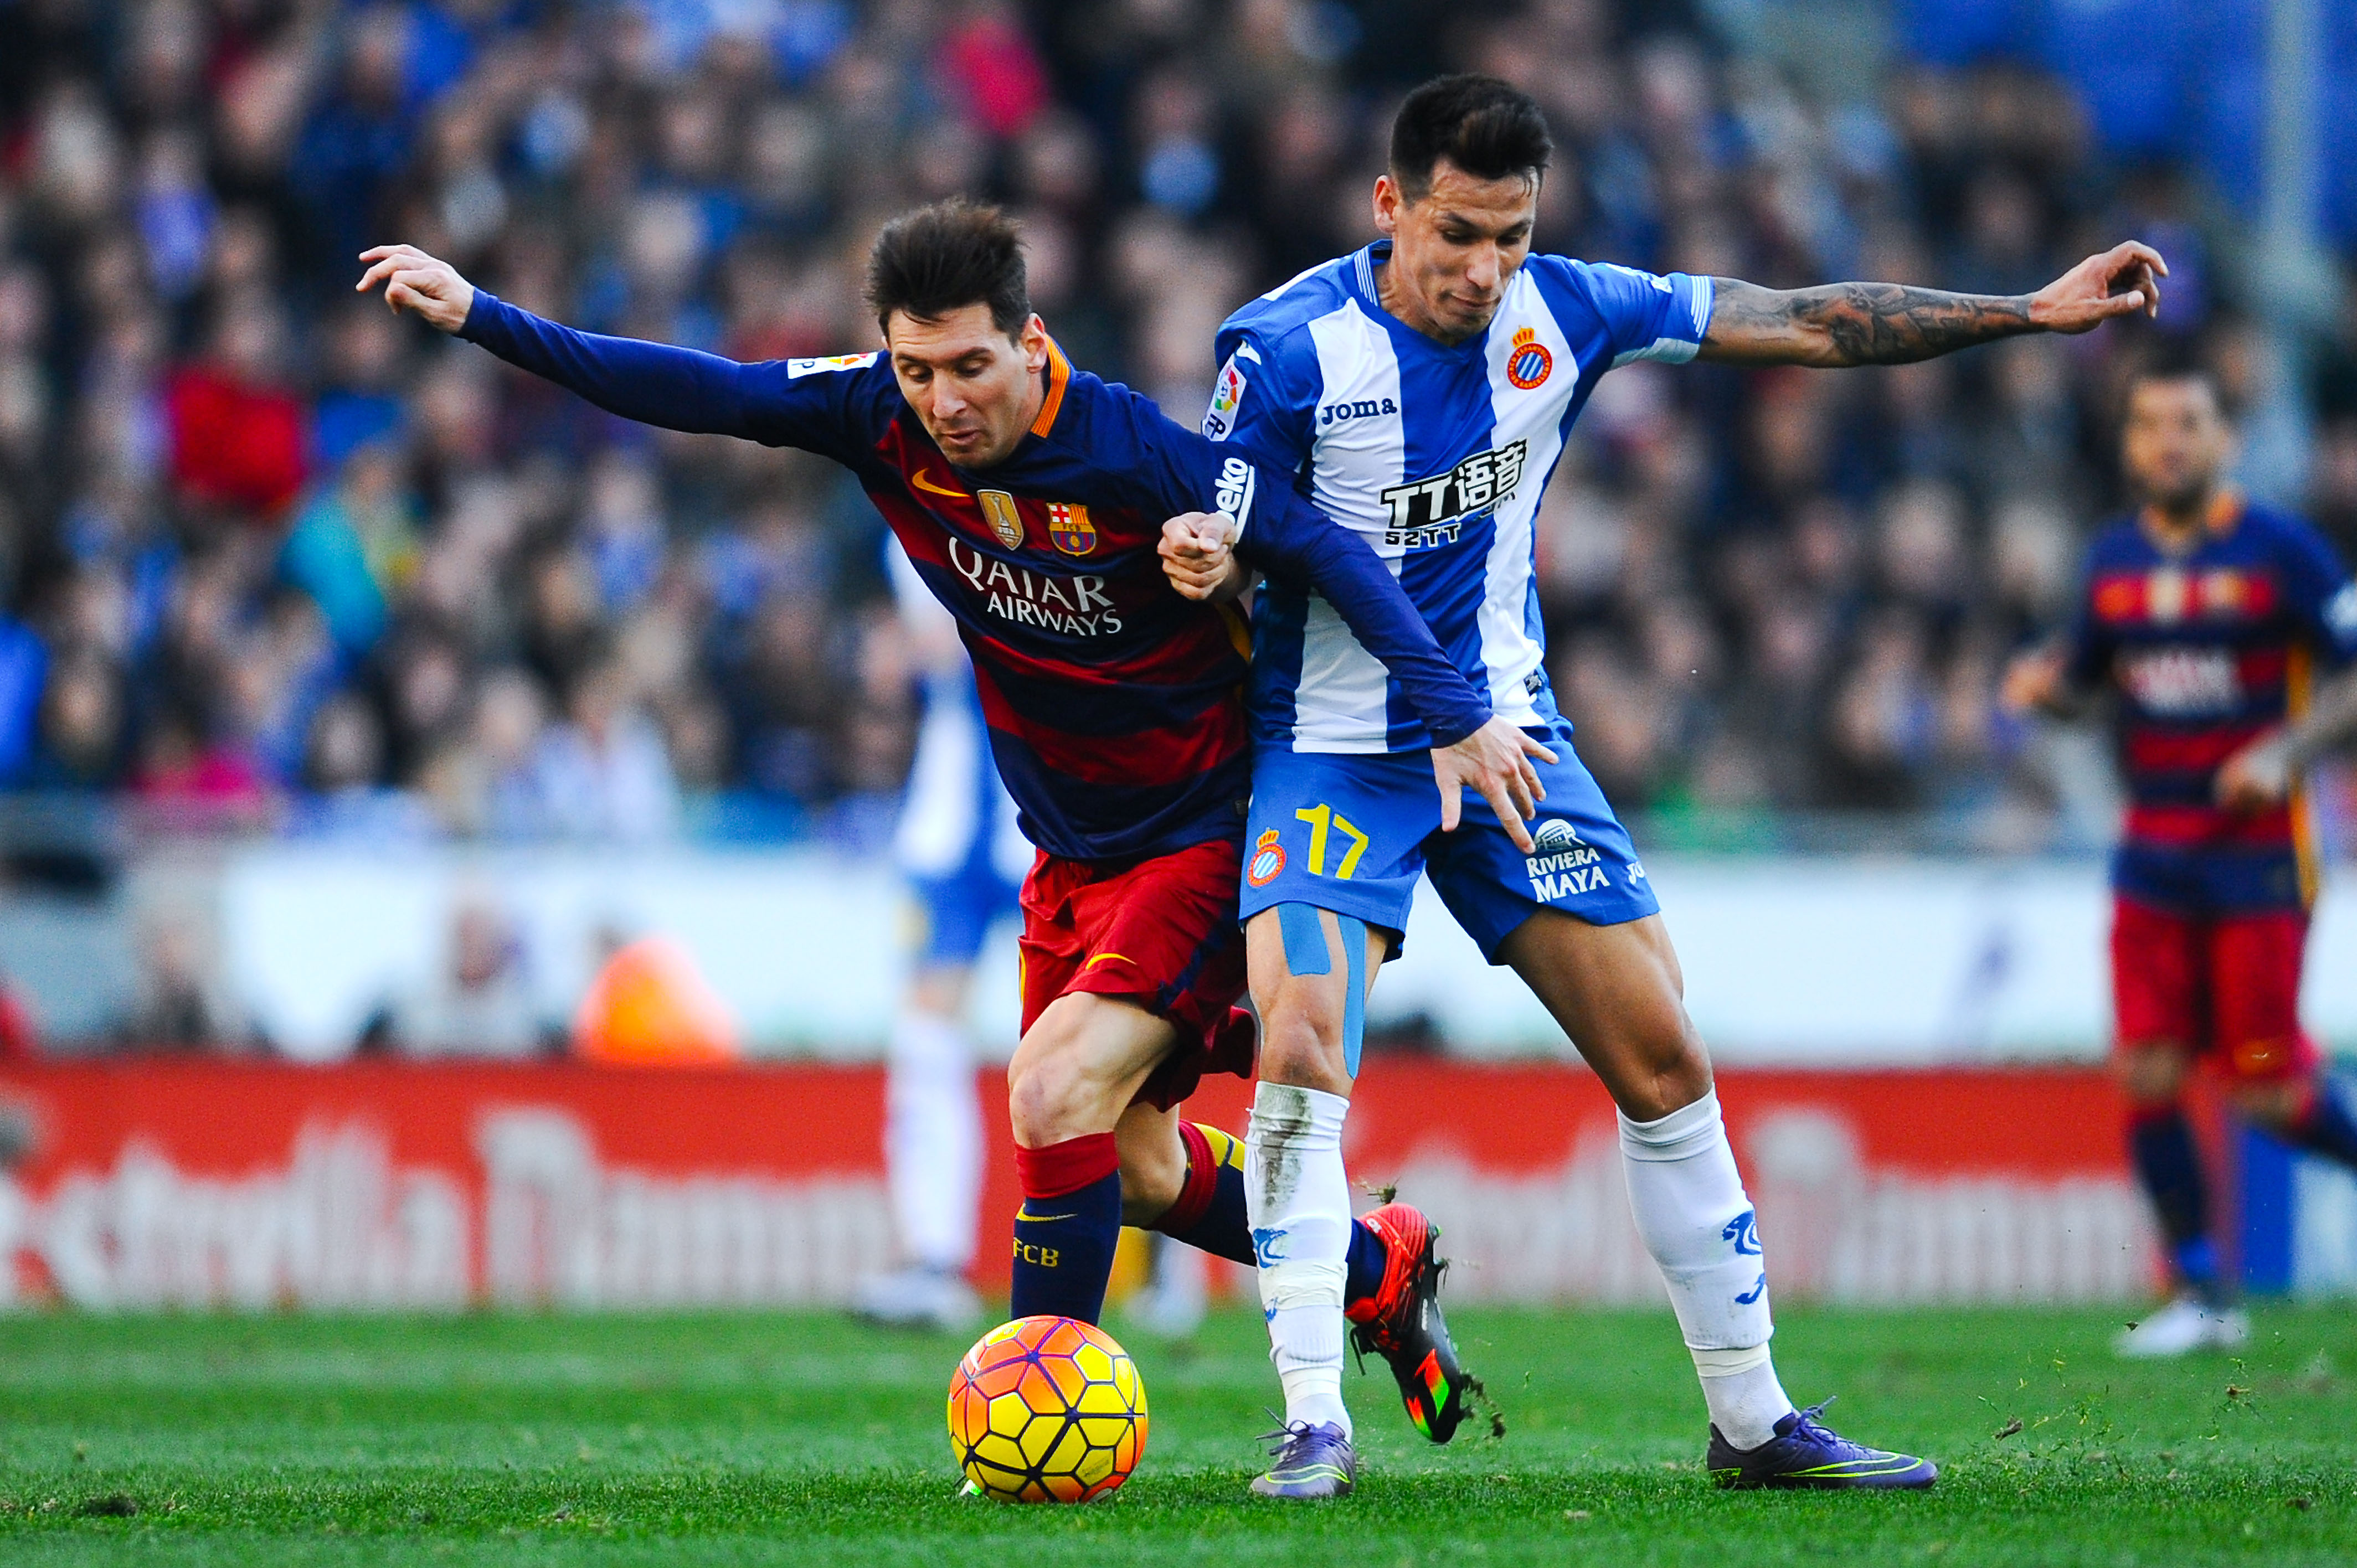 Barcelona , Barcelona Espanyol, Barcelona lineup, Espanyol lineup, Barcelona Espanyol lineup, Barcelona stream, online, channel, when, time, watch, free, live, barcelona free stream, barcelona live online